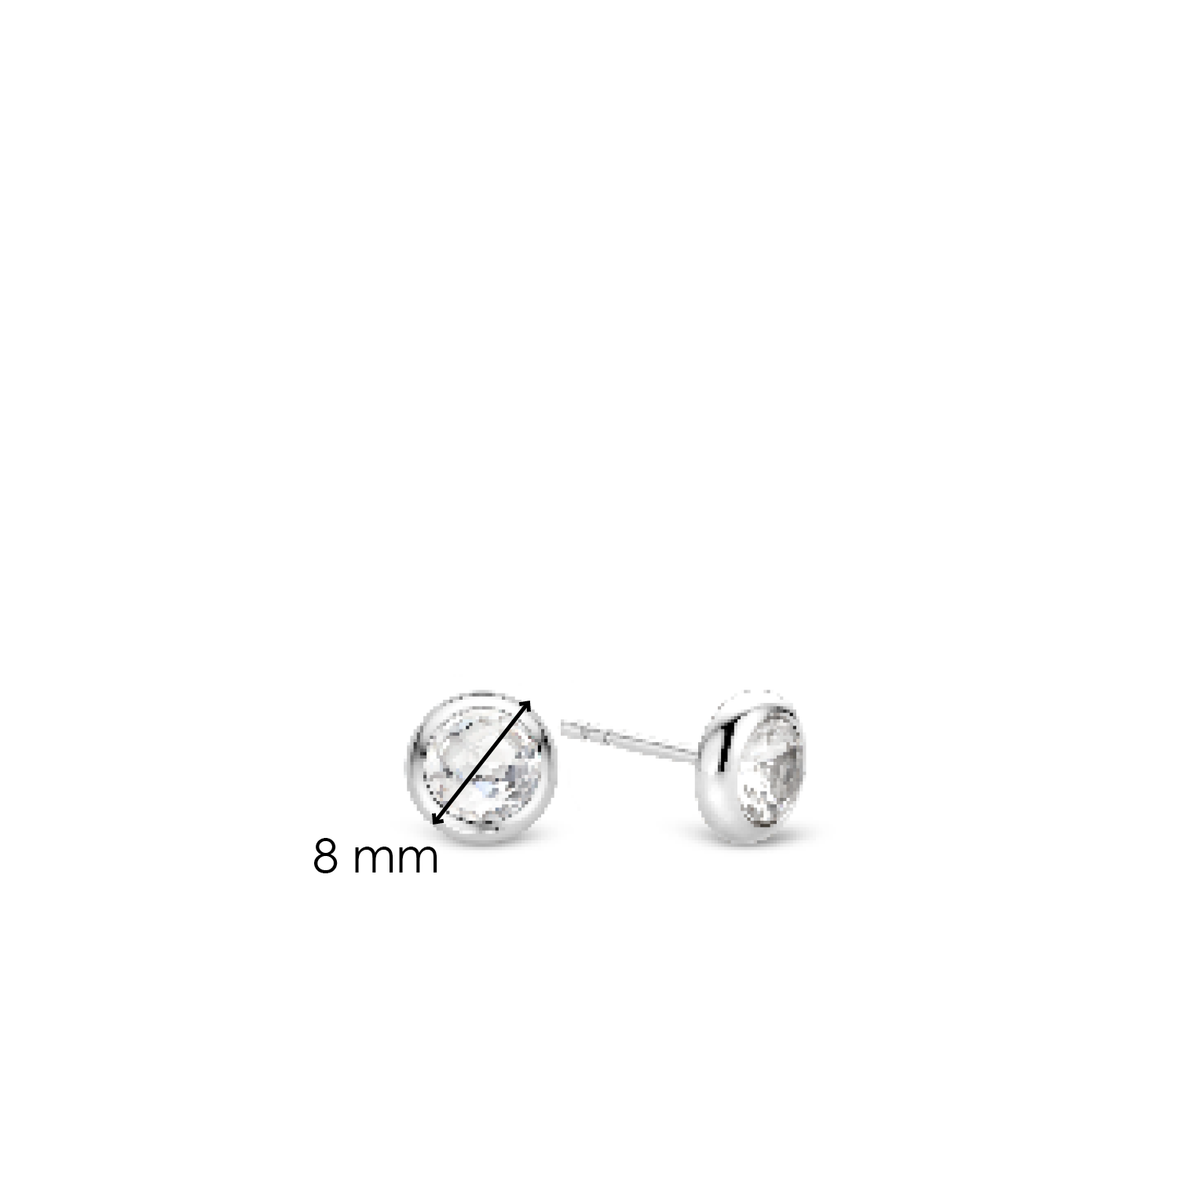 TI SENTO - Milano Earrings 7748ZI